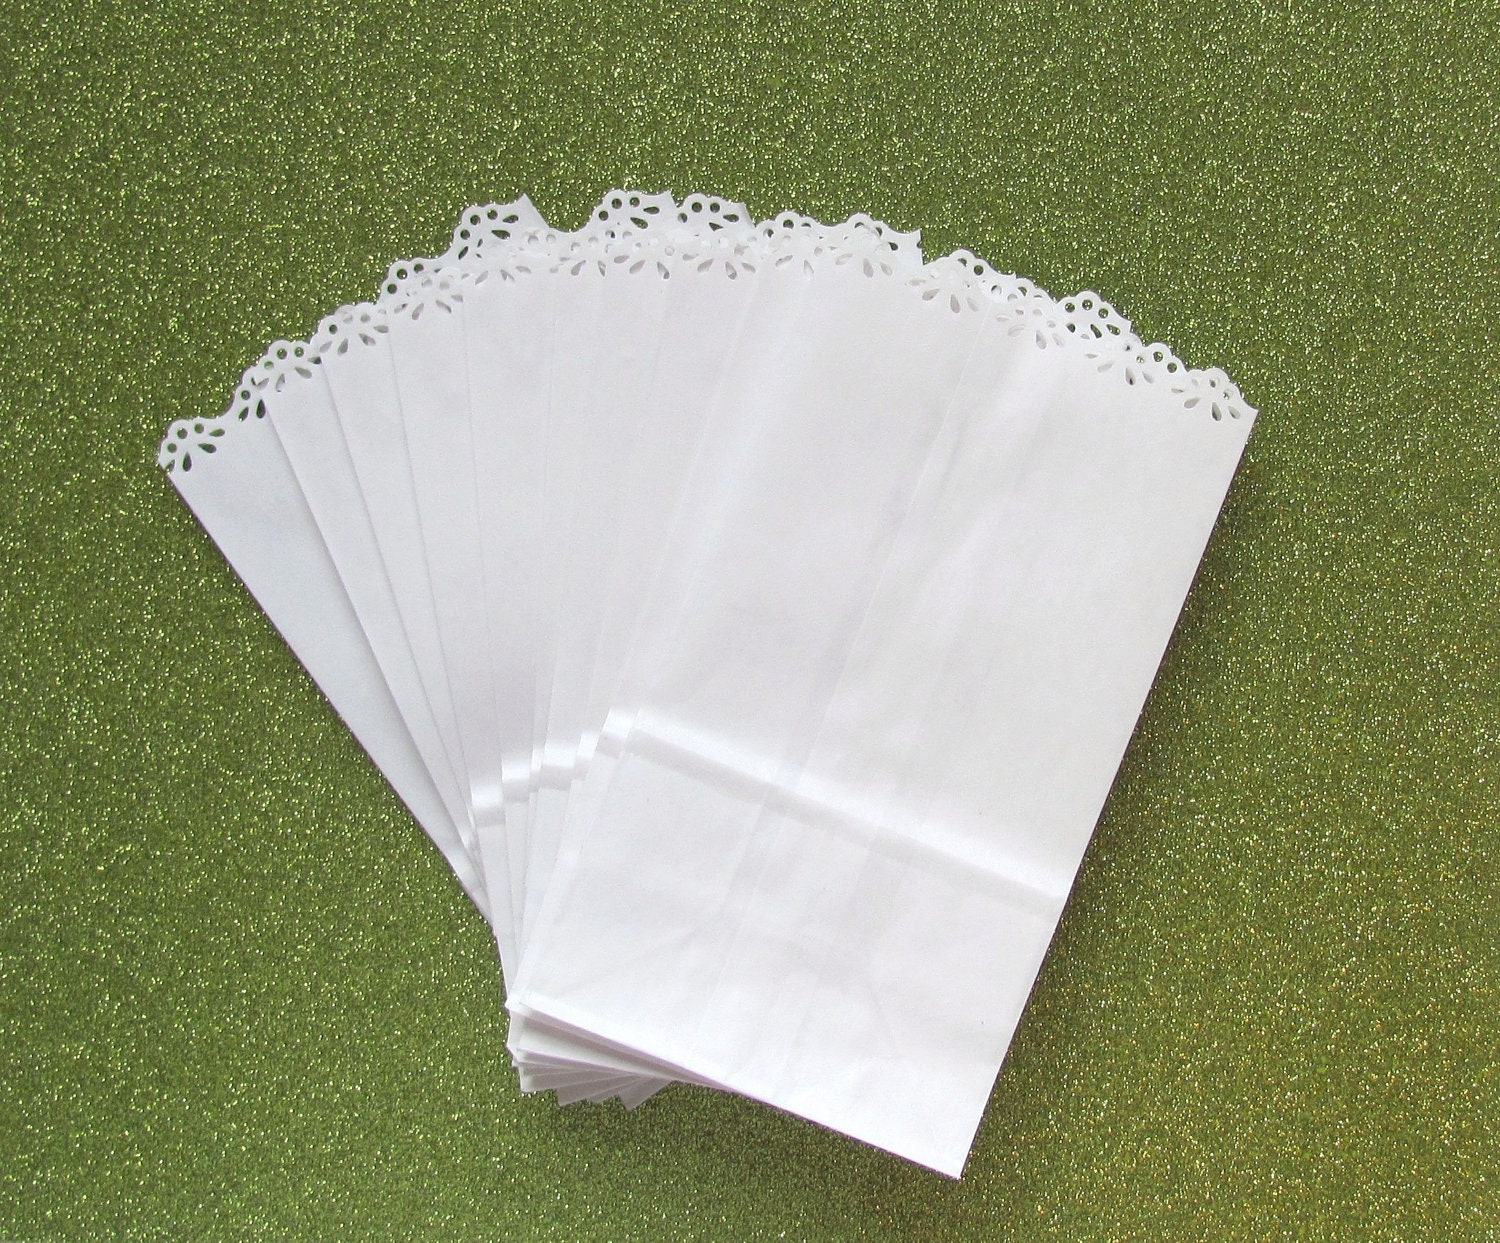 White Paper Bags with Lace Edge for Wedding Favors or Party Gifts ...